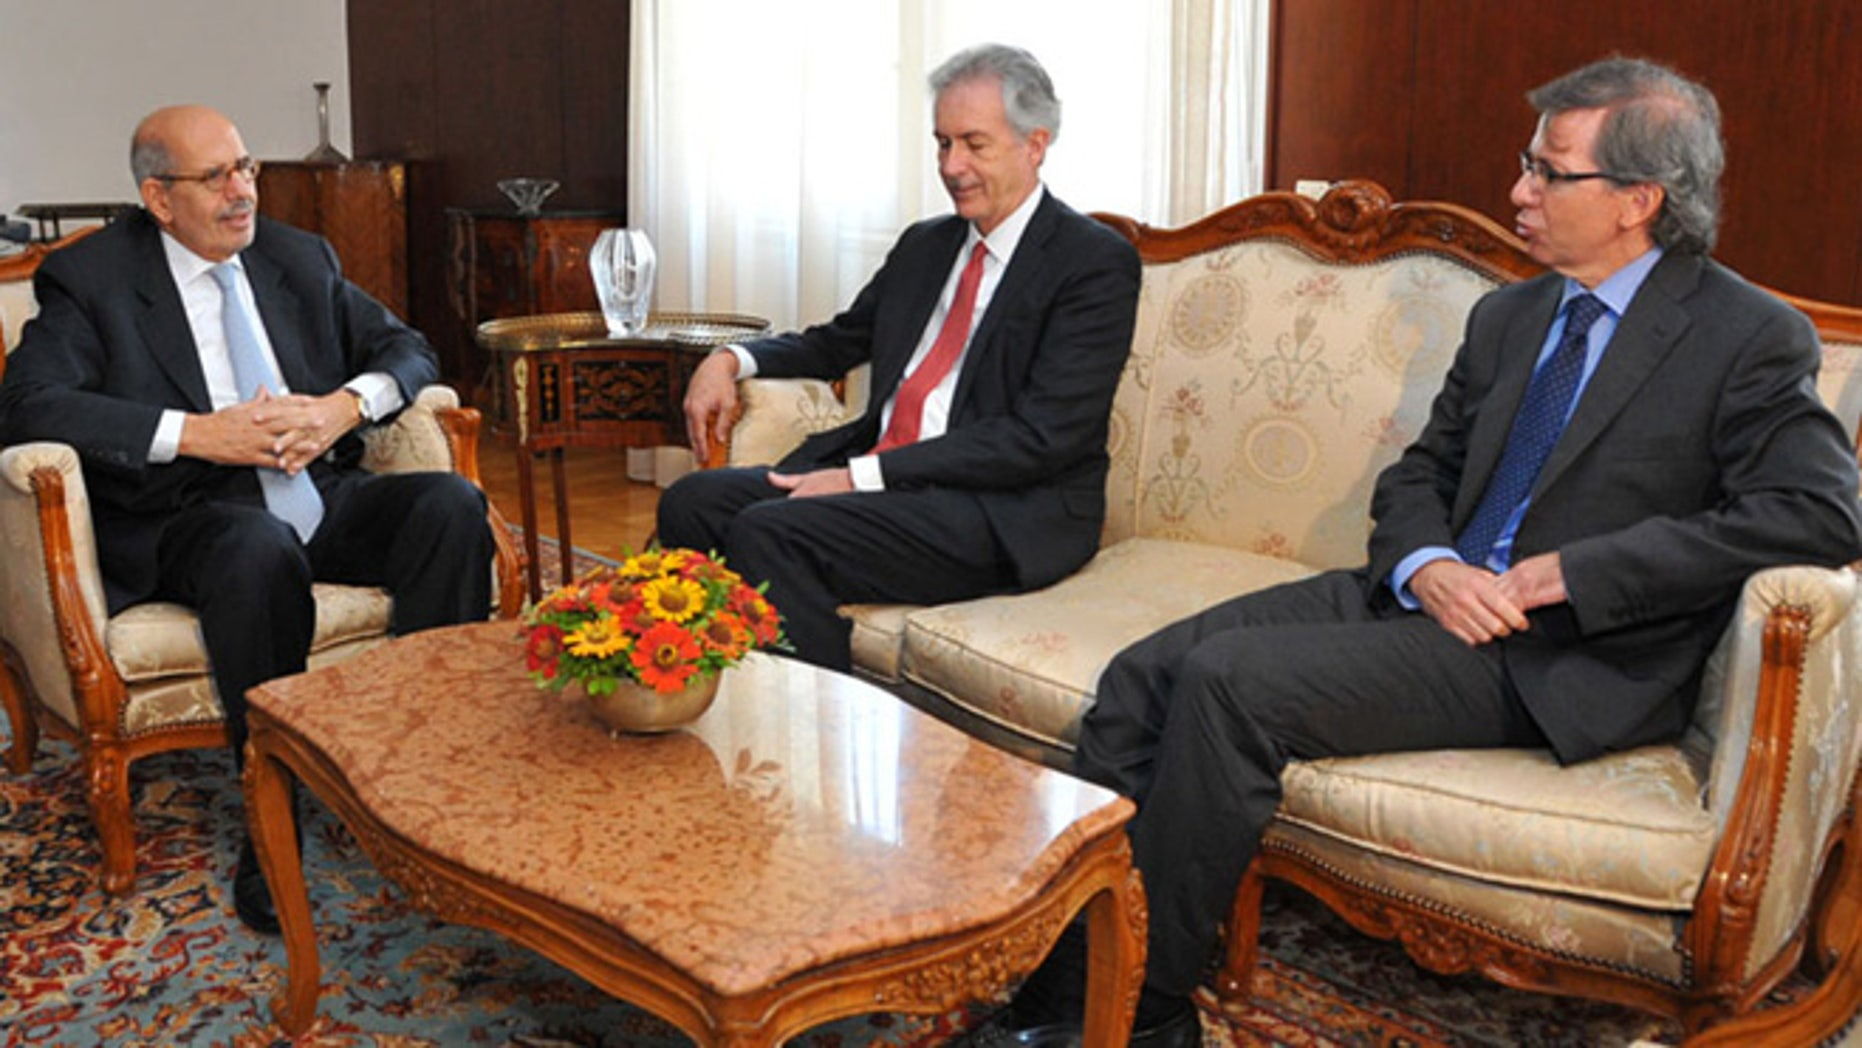 Aug. 6, 2013: This image released by the Egyptian Presidency shows interim Vice President Mohamed Elbaradei, left, meets with U.S. Deputy Secretary of State William Burns, center, in Cairo, Egypt.